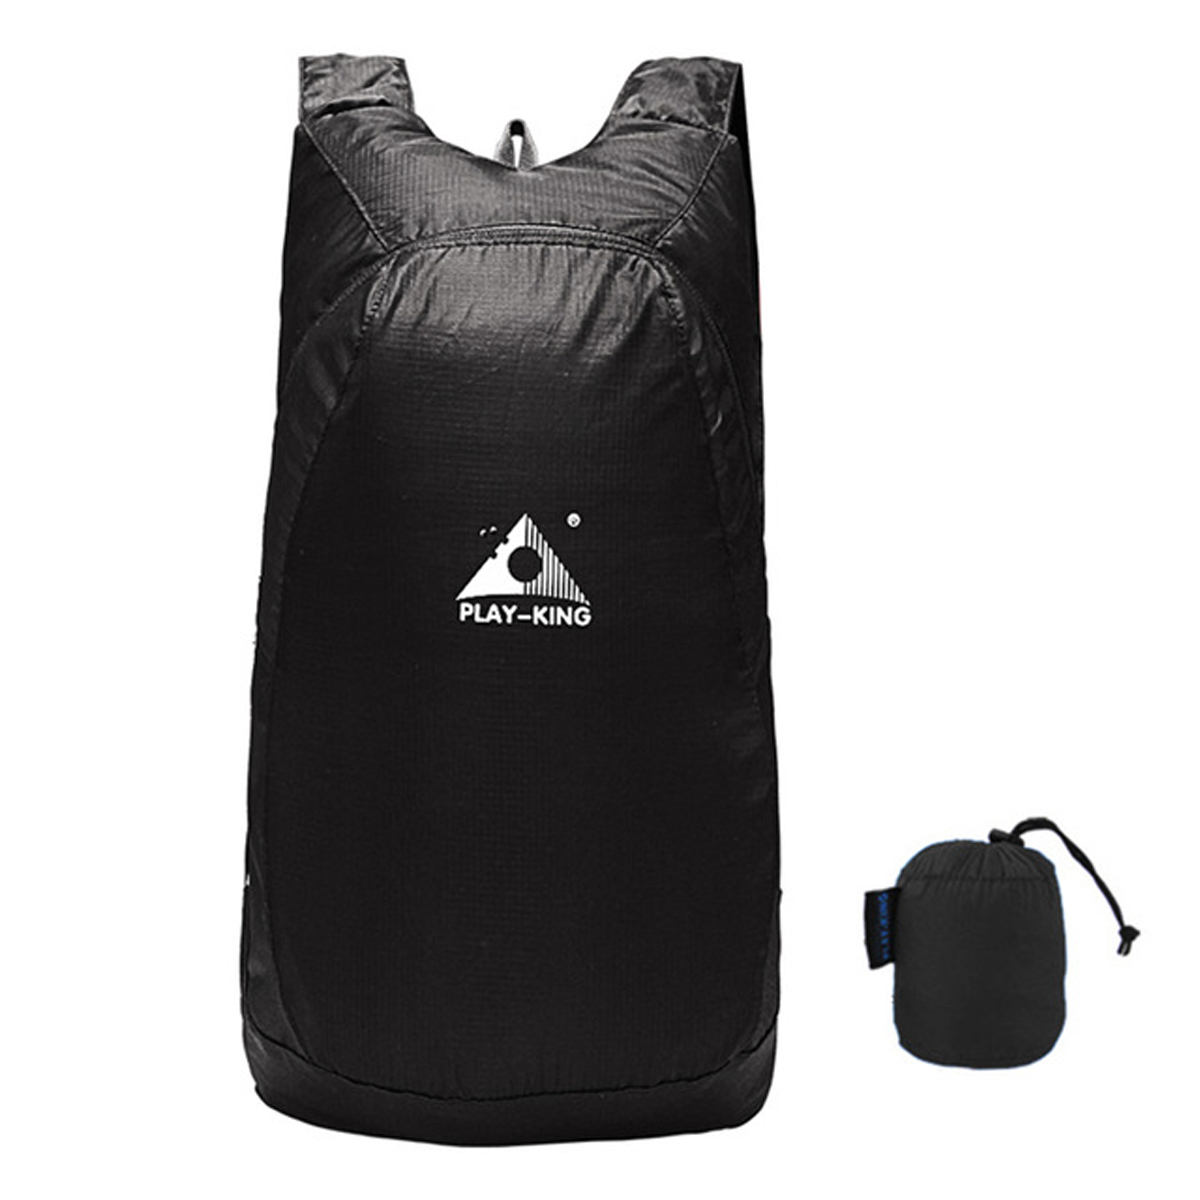 b3709c3d978a 20L Foldable Waterproof Outdoor Climbing Bags Athletic Sport Hiking Travel  Backpack (COLOR  BLACK)